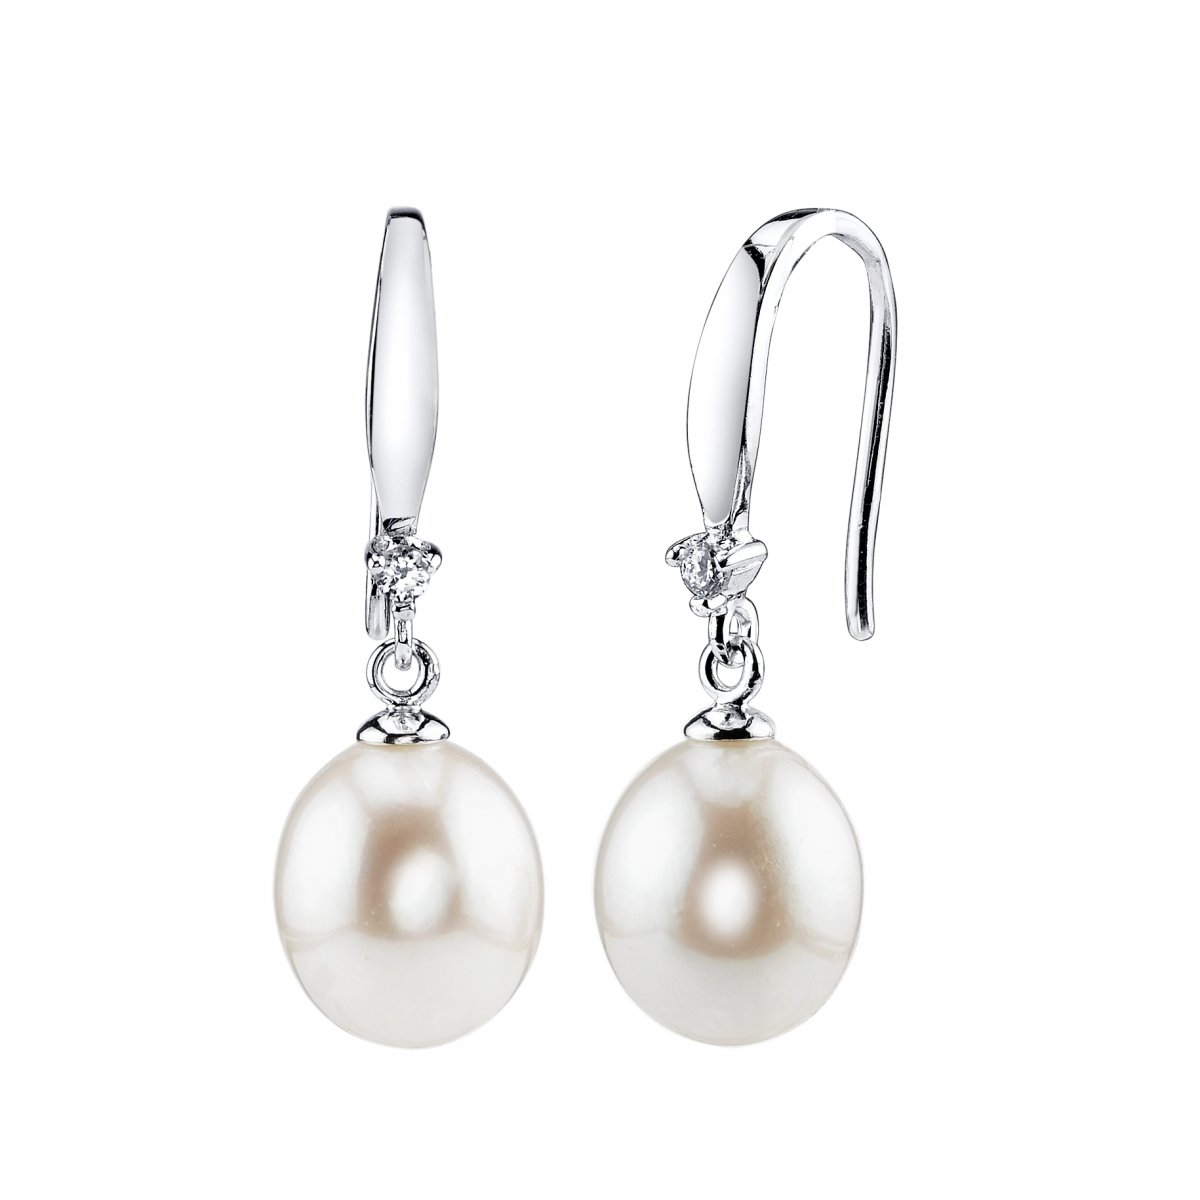 9-10mm Genuine White Freshwater Cultured Pearl & Cubic Zirconia Ally Earrings for Women